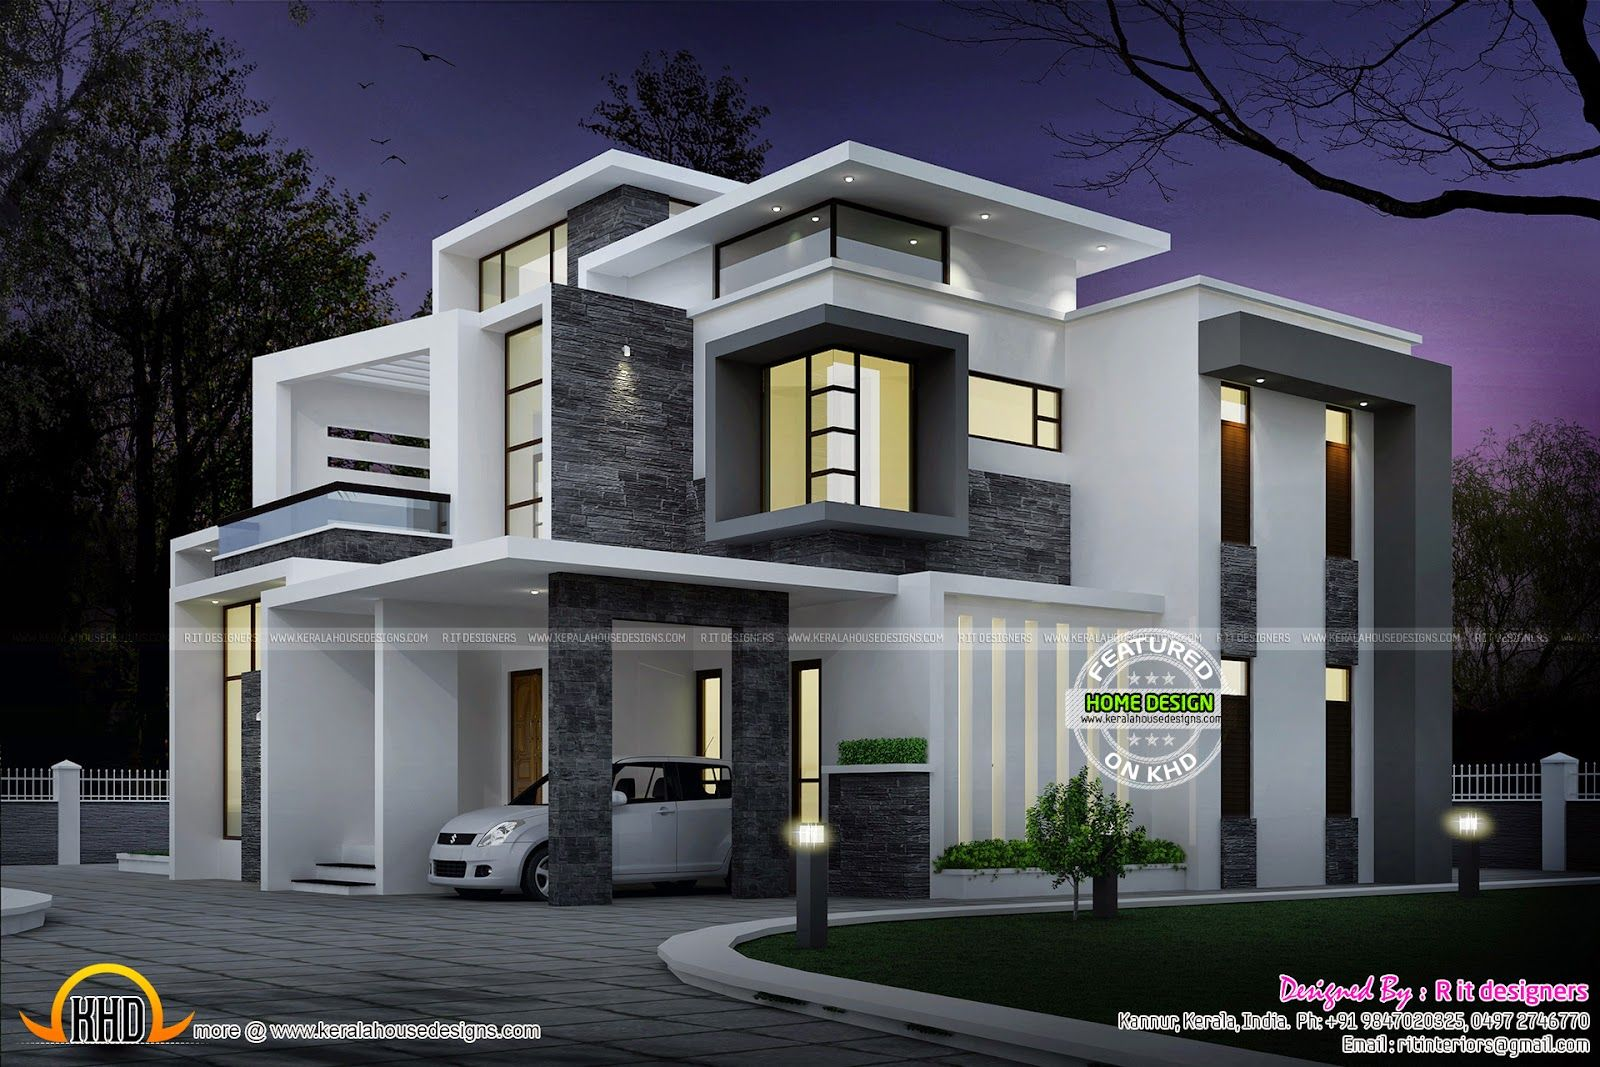 Side elevation view grand contemporary home design night view of 3 bedroom attached Modern home plans 2015